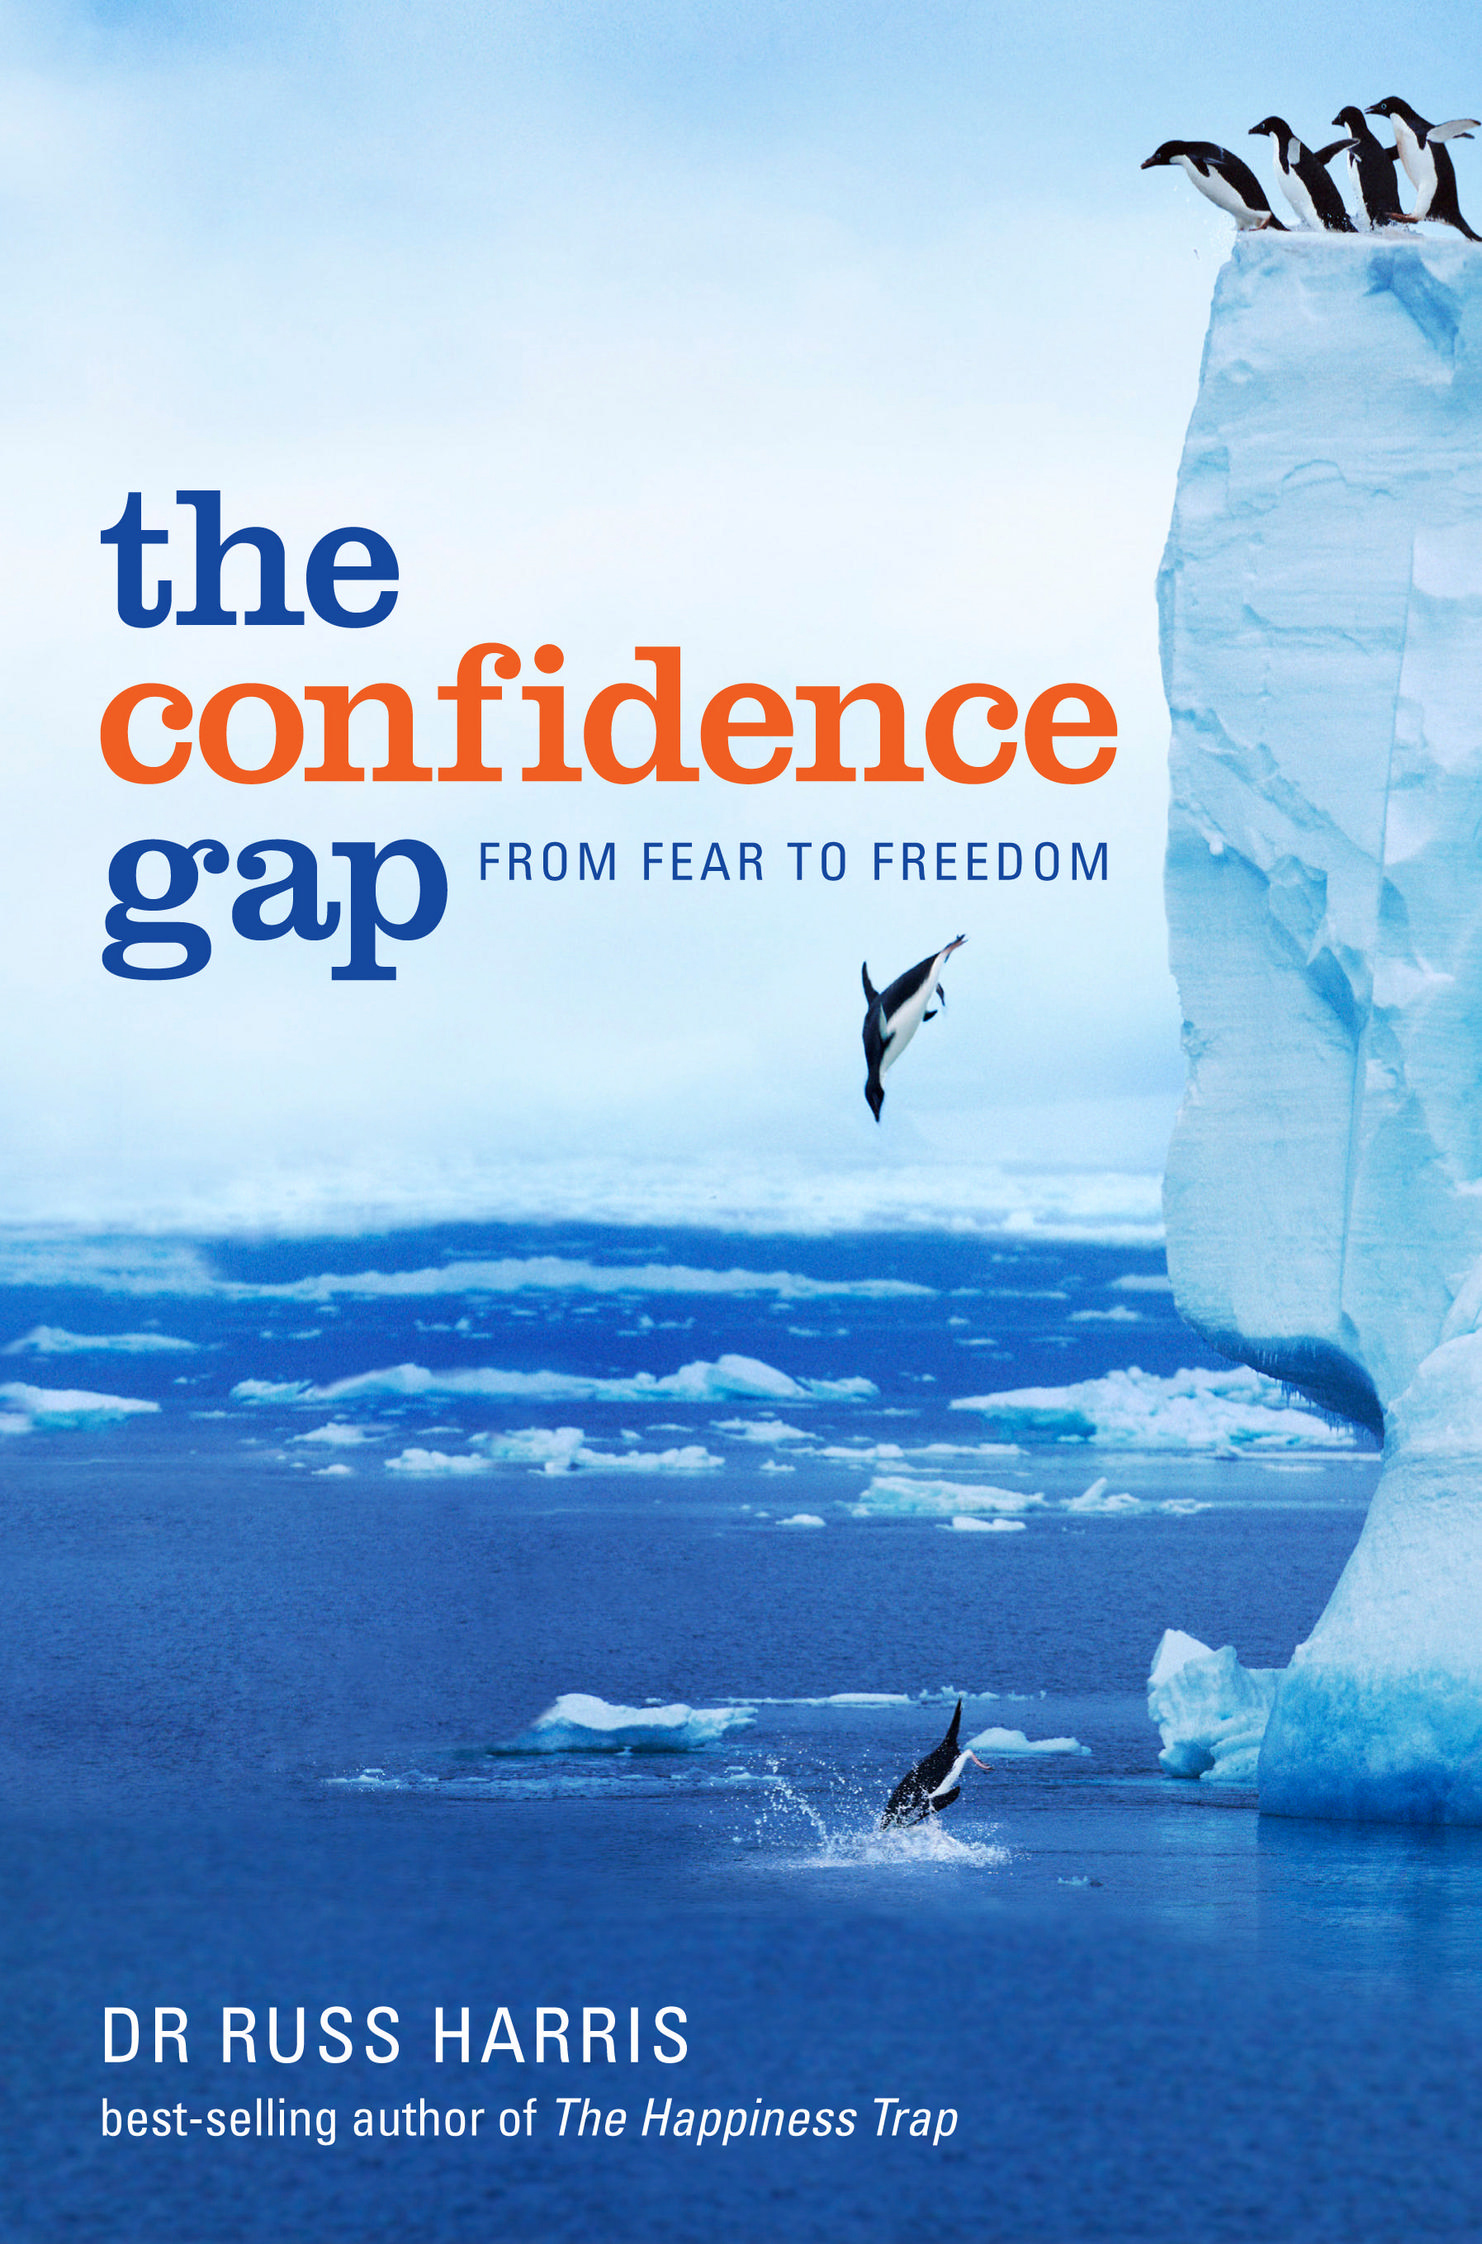 The Confidence Gap by Dr. Russ Harris, ISBN: 9781921518966